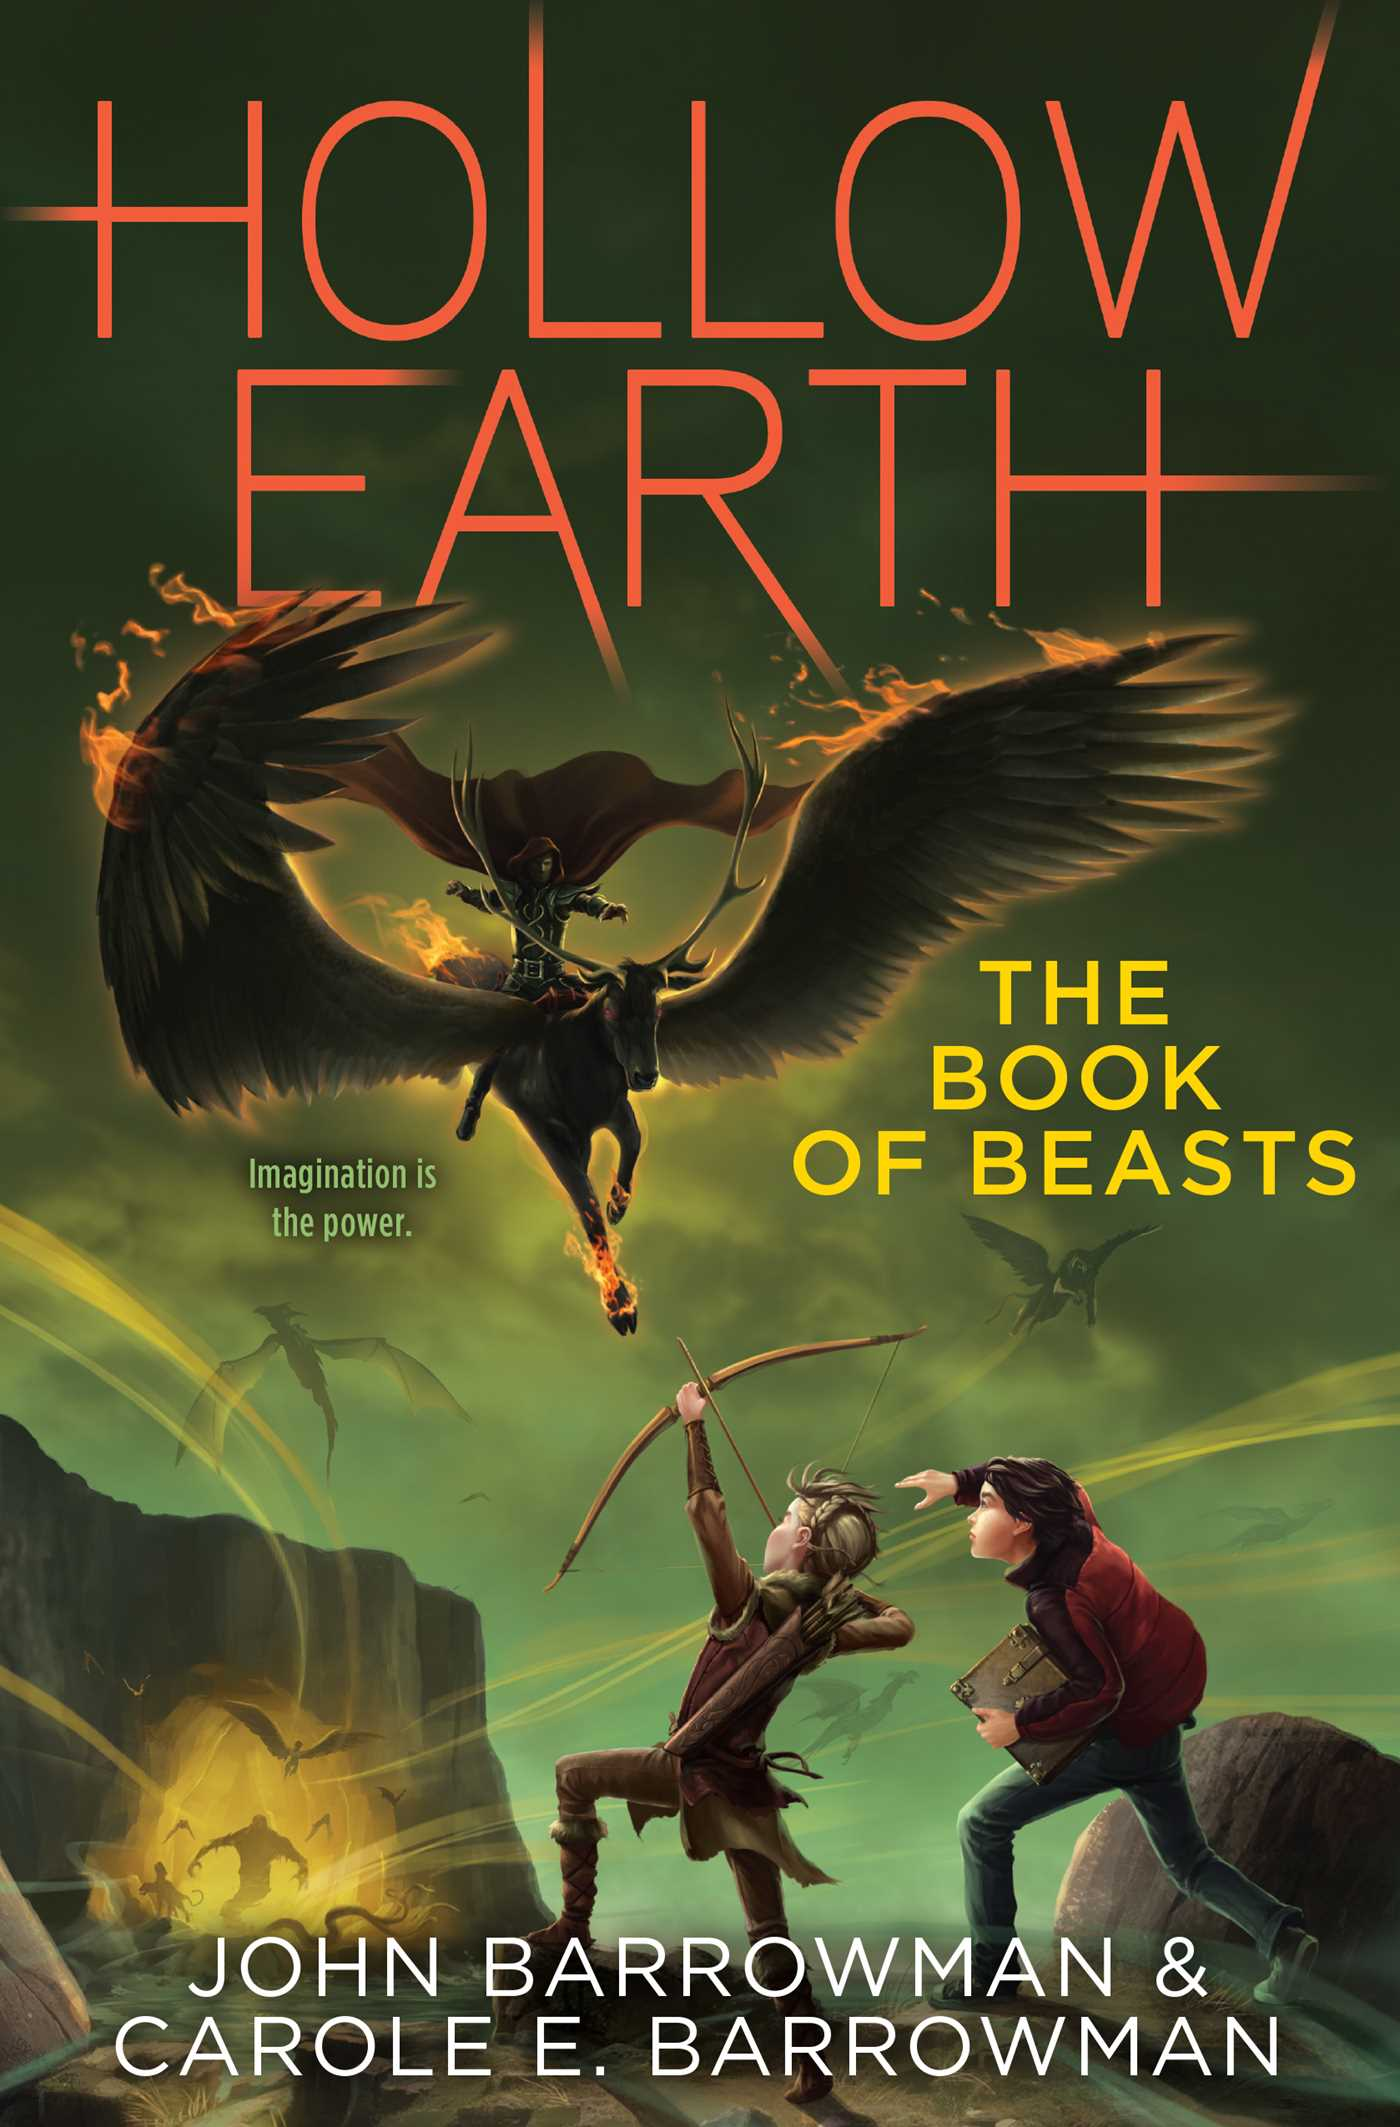 The book of beasts 9781481442312 hr